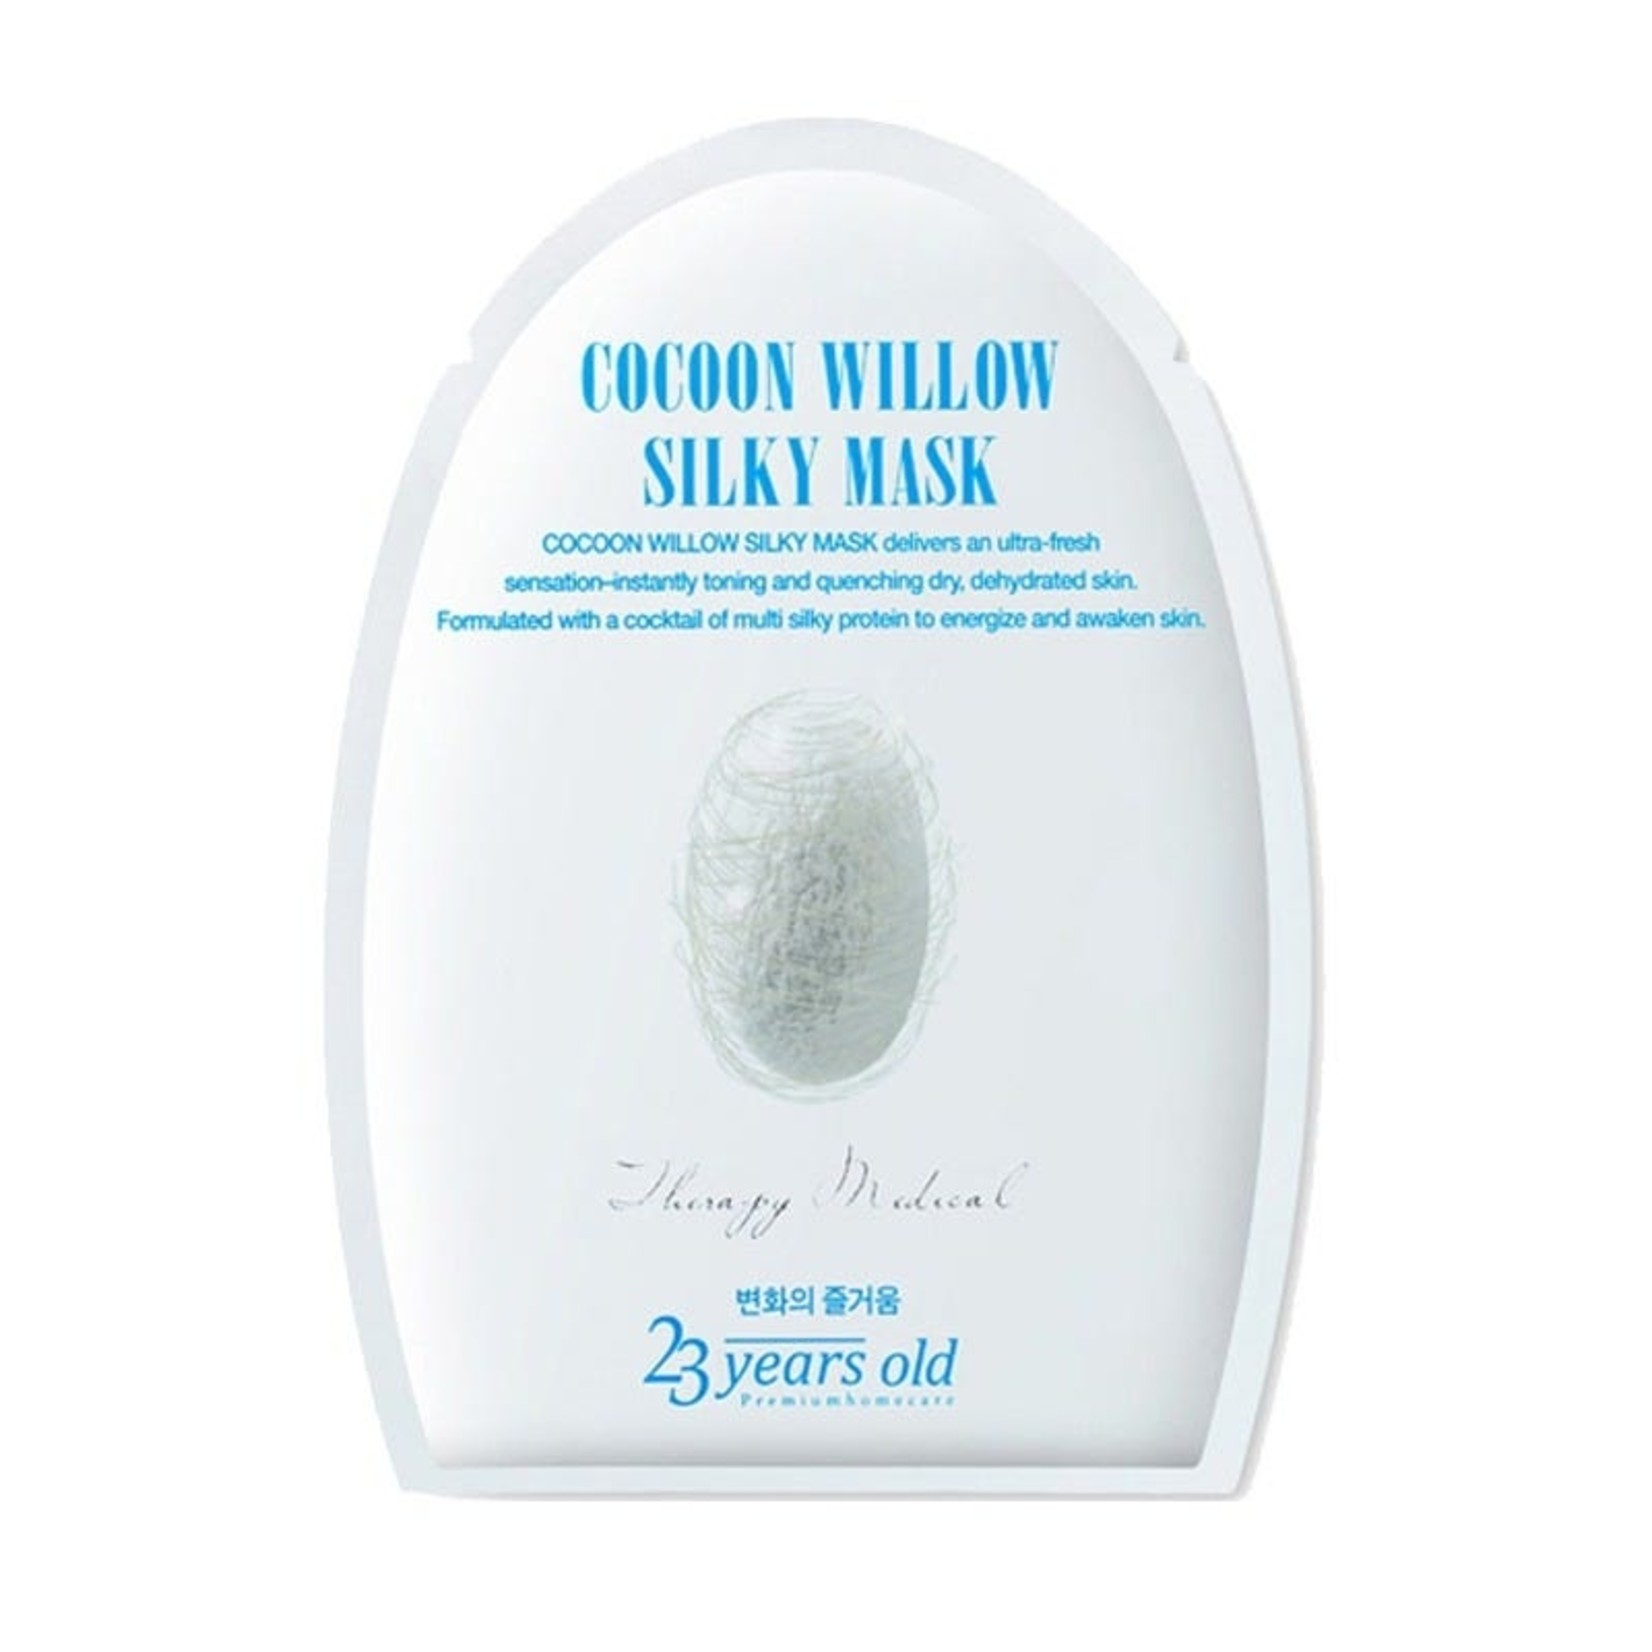 23 Years Old Cocoon Willow Silky Maske